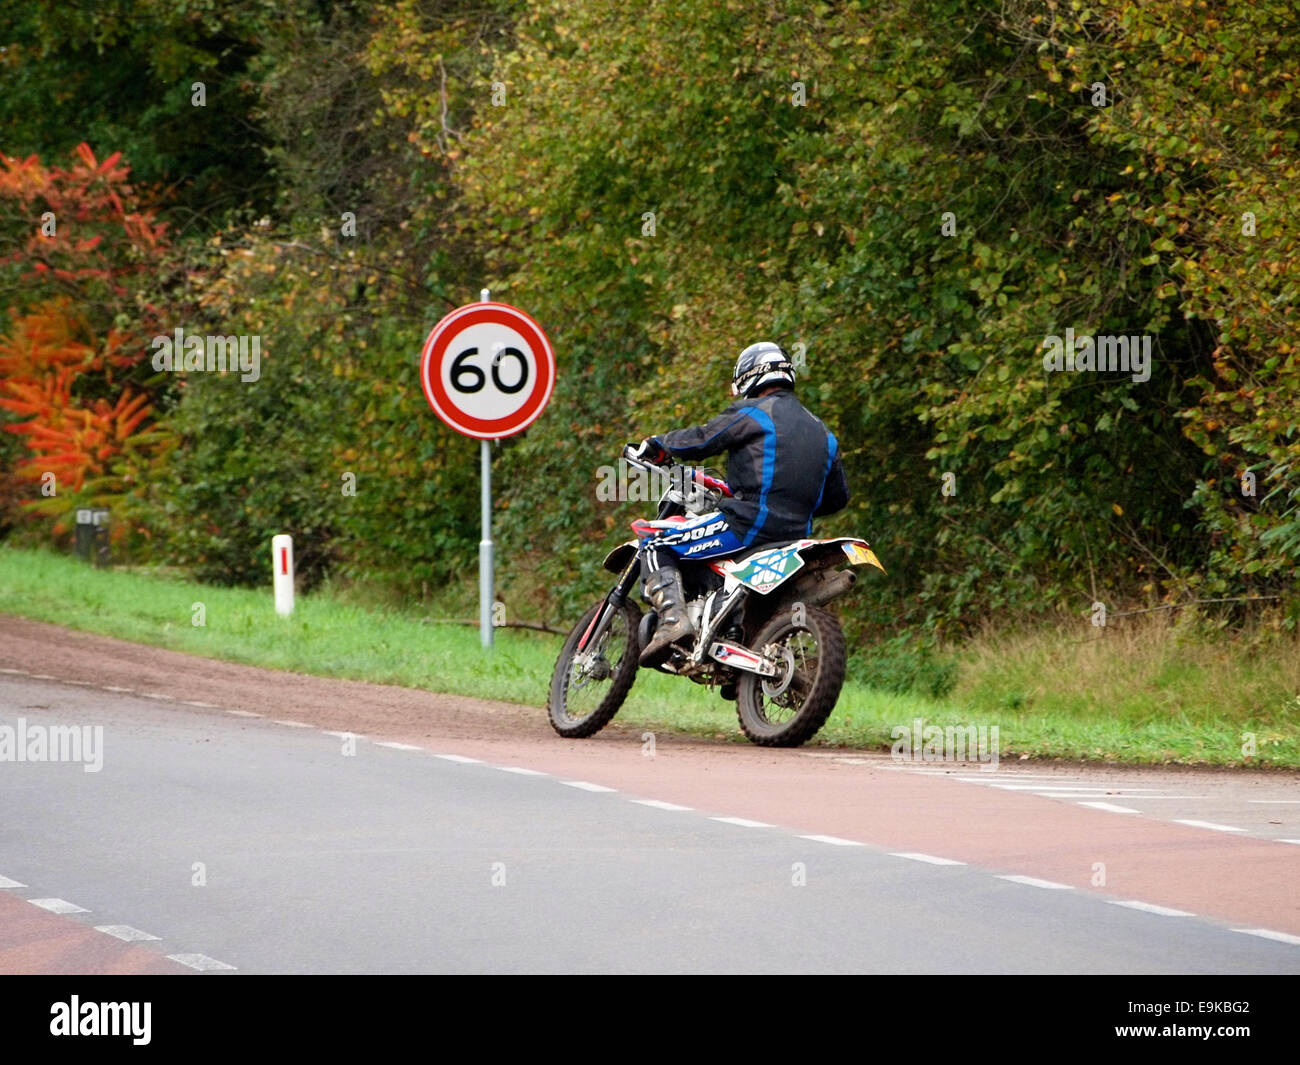 Man on Husqvarna offroad motorcycle passing 60 kmh speed limit sign in Ruurlo, the Netherlands - Stock Image